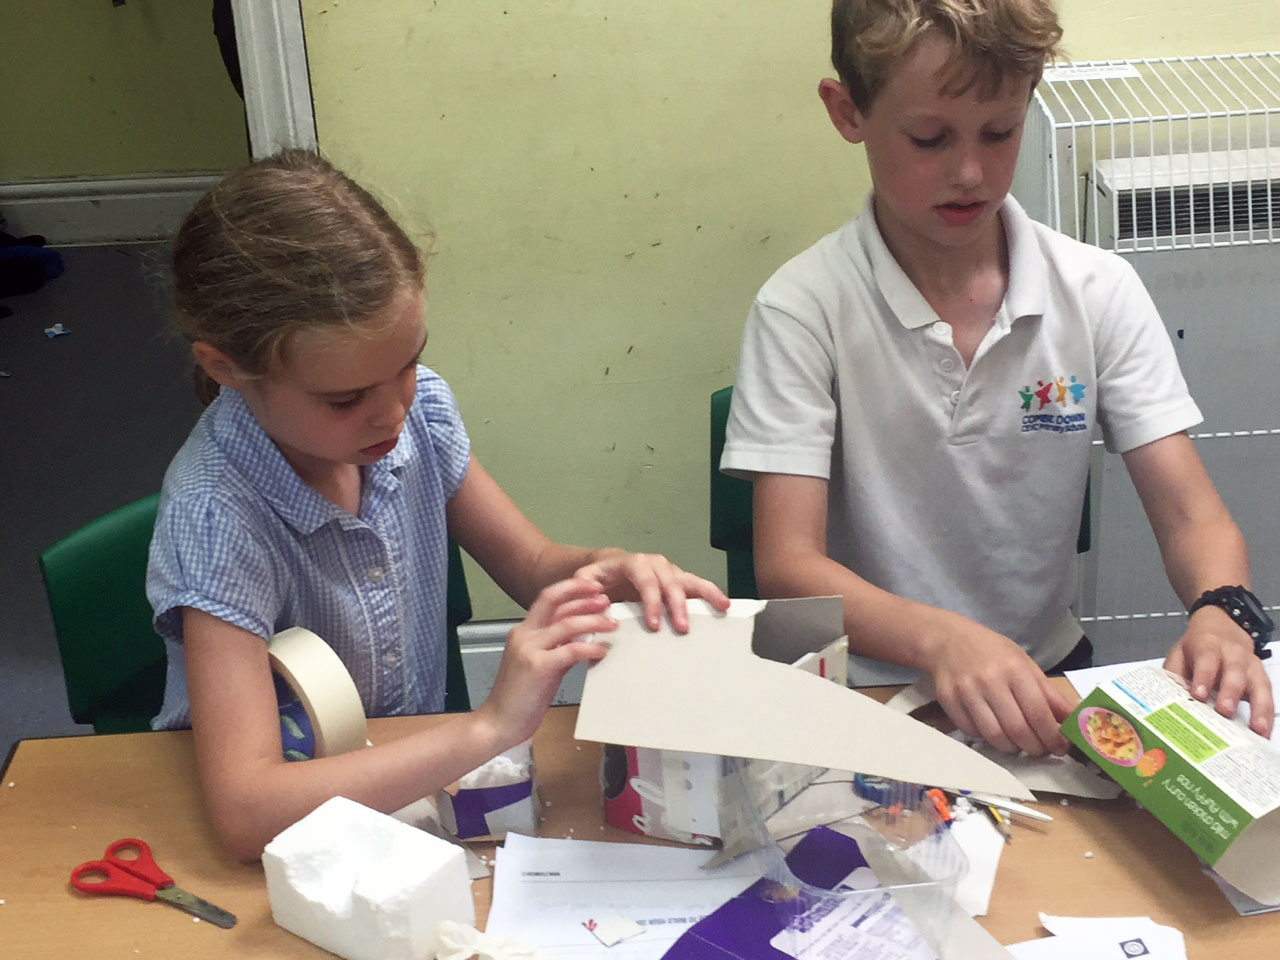 Building UV shelters